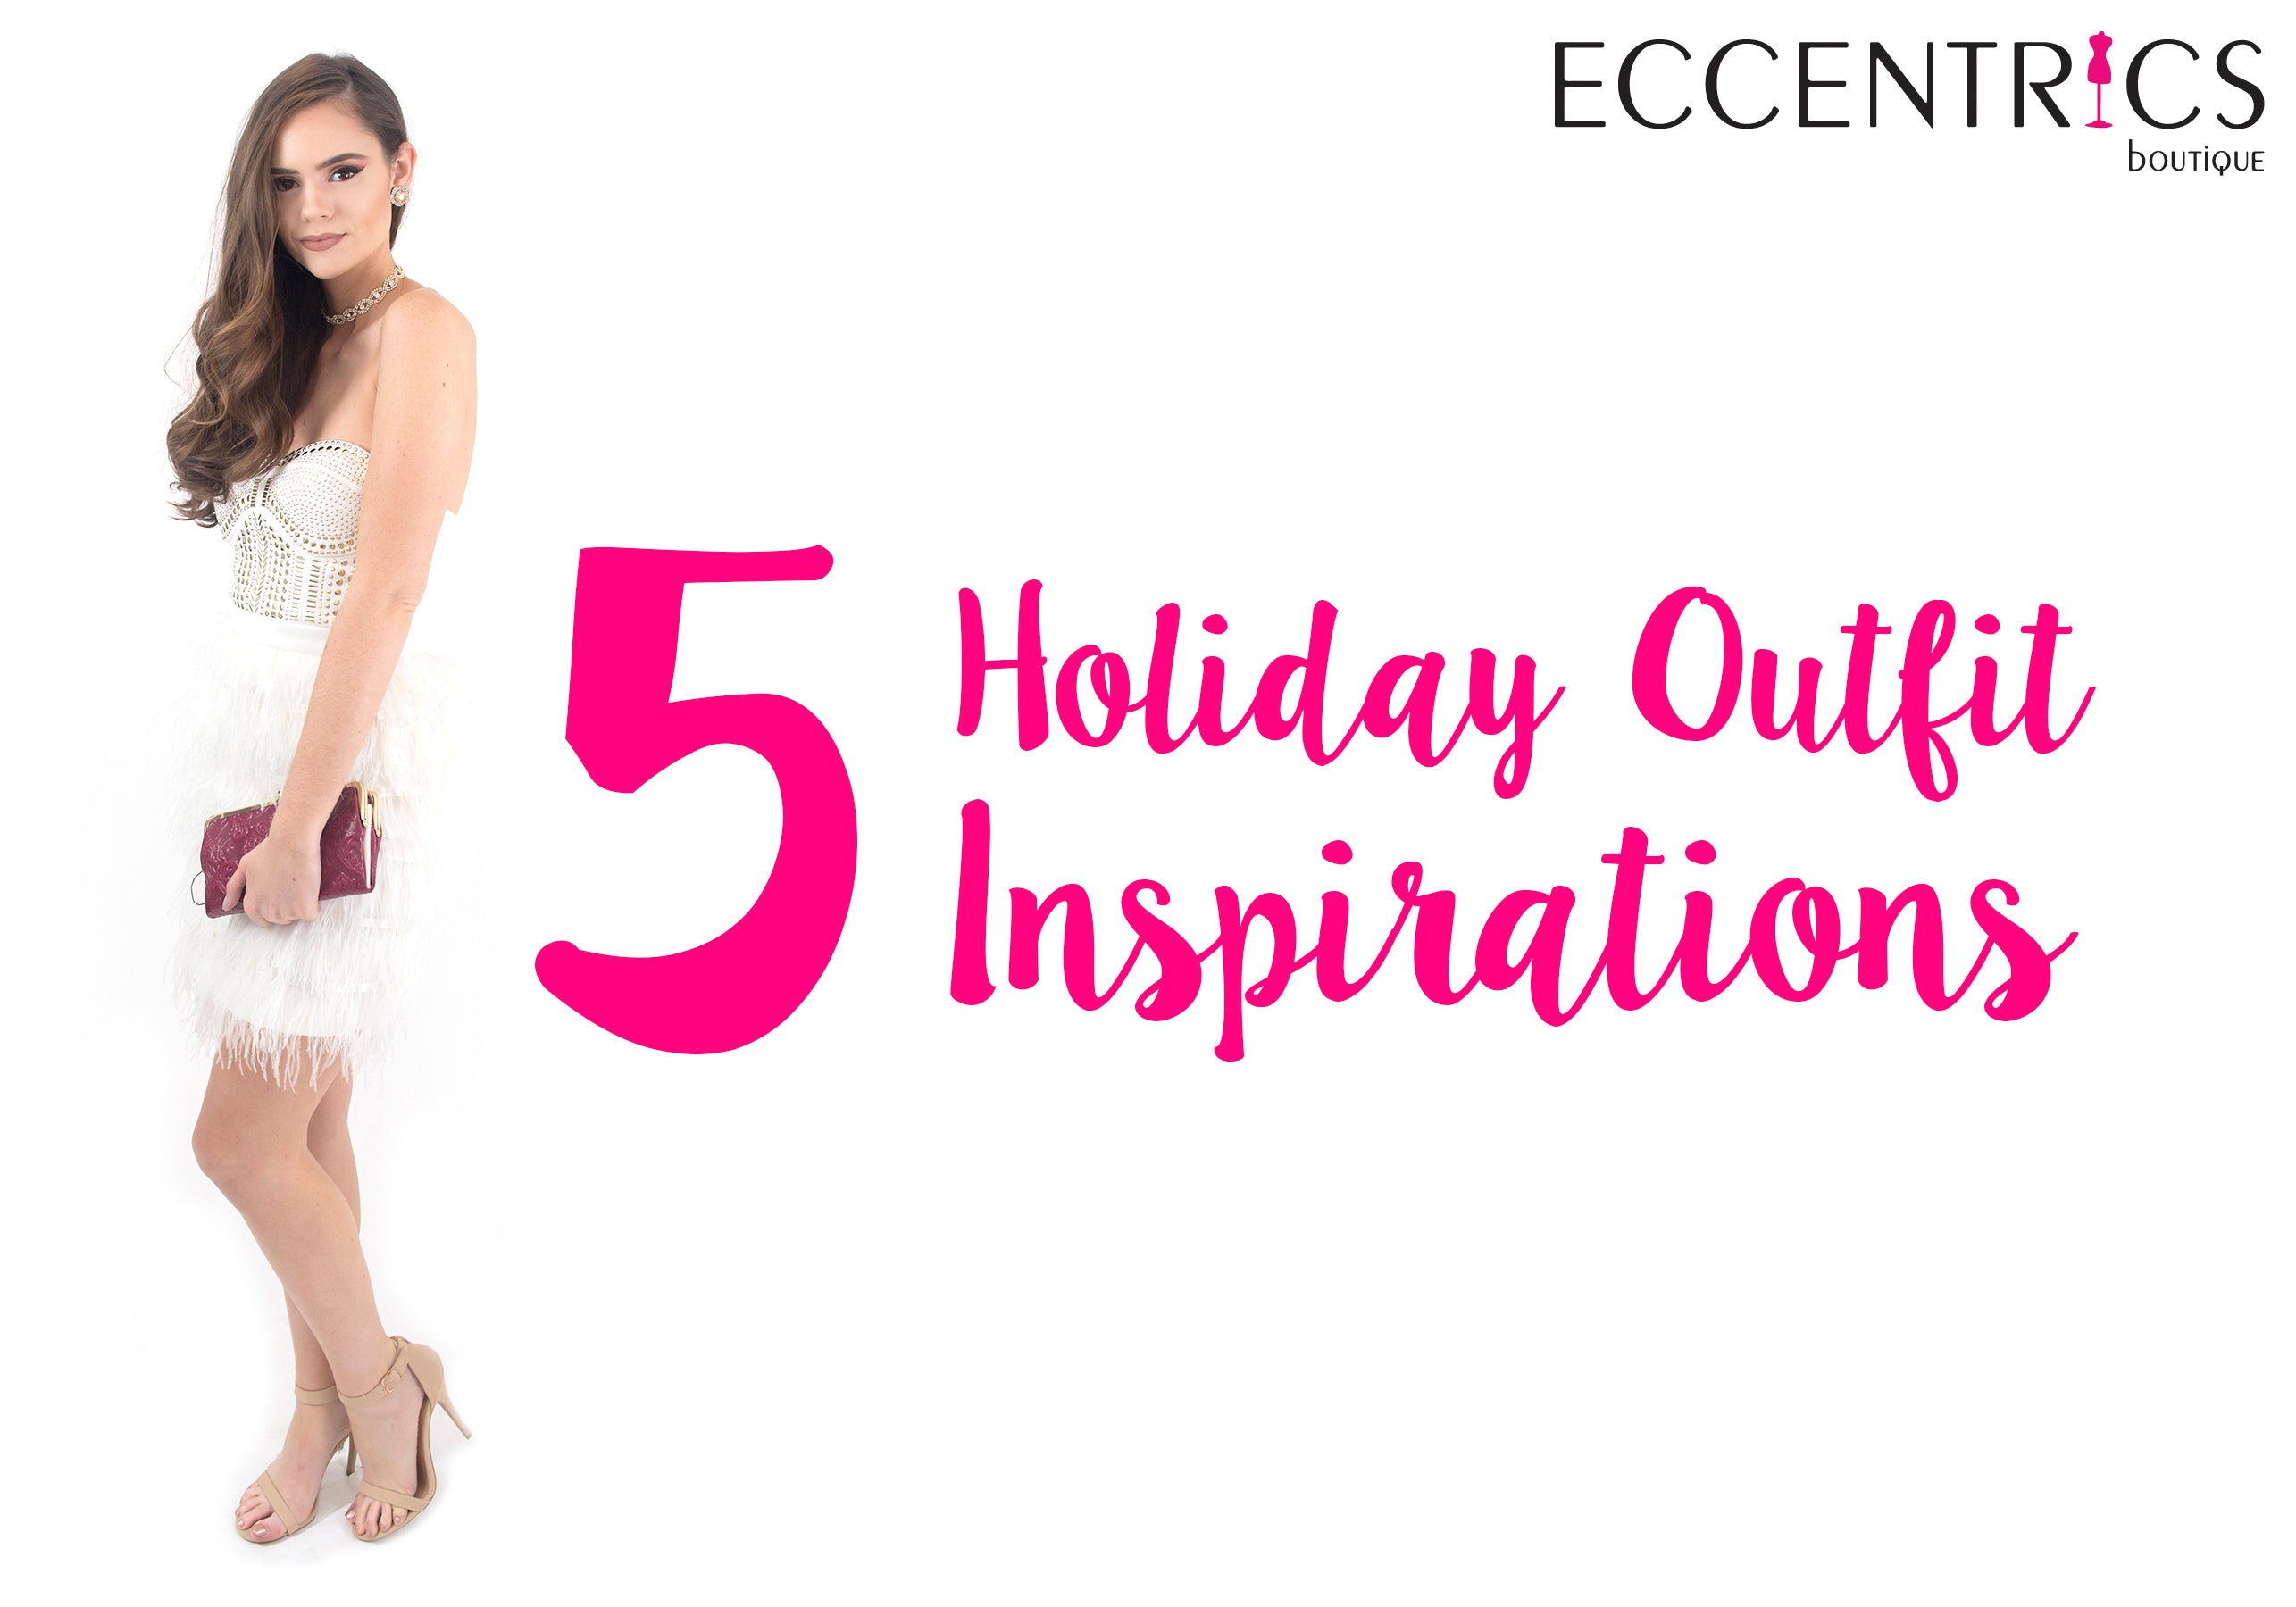 5 holiday outfit inspirations at Eccentrics Boutique